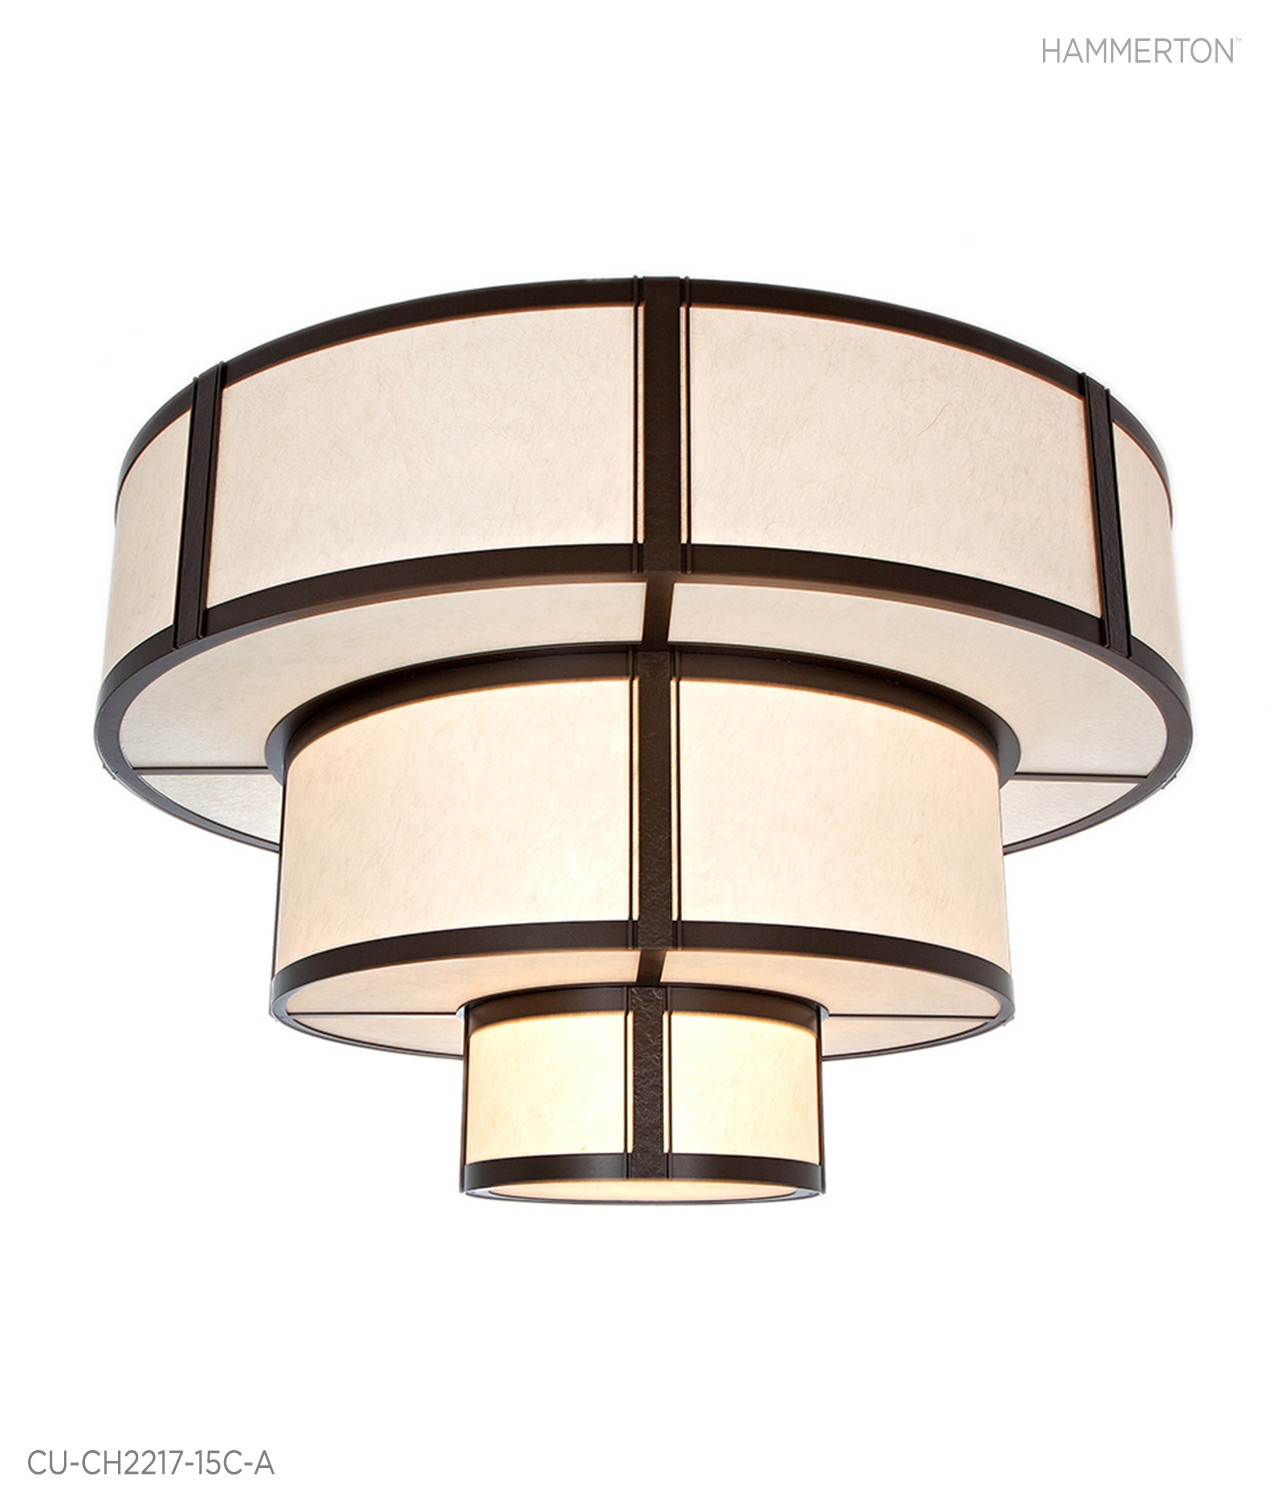 Designed for the Ocean Reef Club in Key Largo, this spectacular 6.5 ft wide multi-drum chandelier sets the tone for elegance.The Washi Cream lens is a stark contrast to the Tempered Bronze Metallic finish.  Fixture: CU-CH2217-15C-A